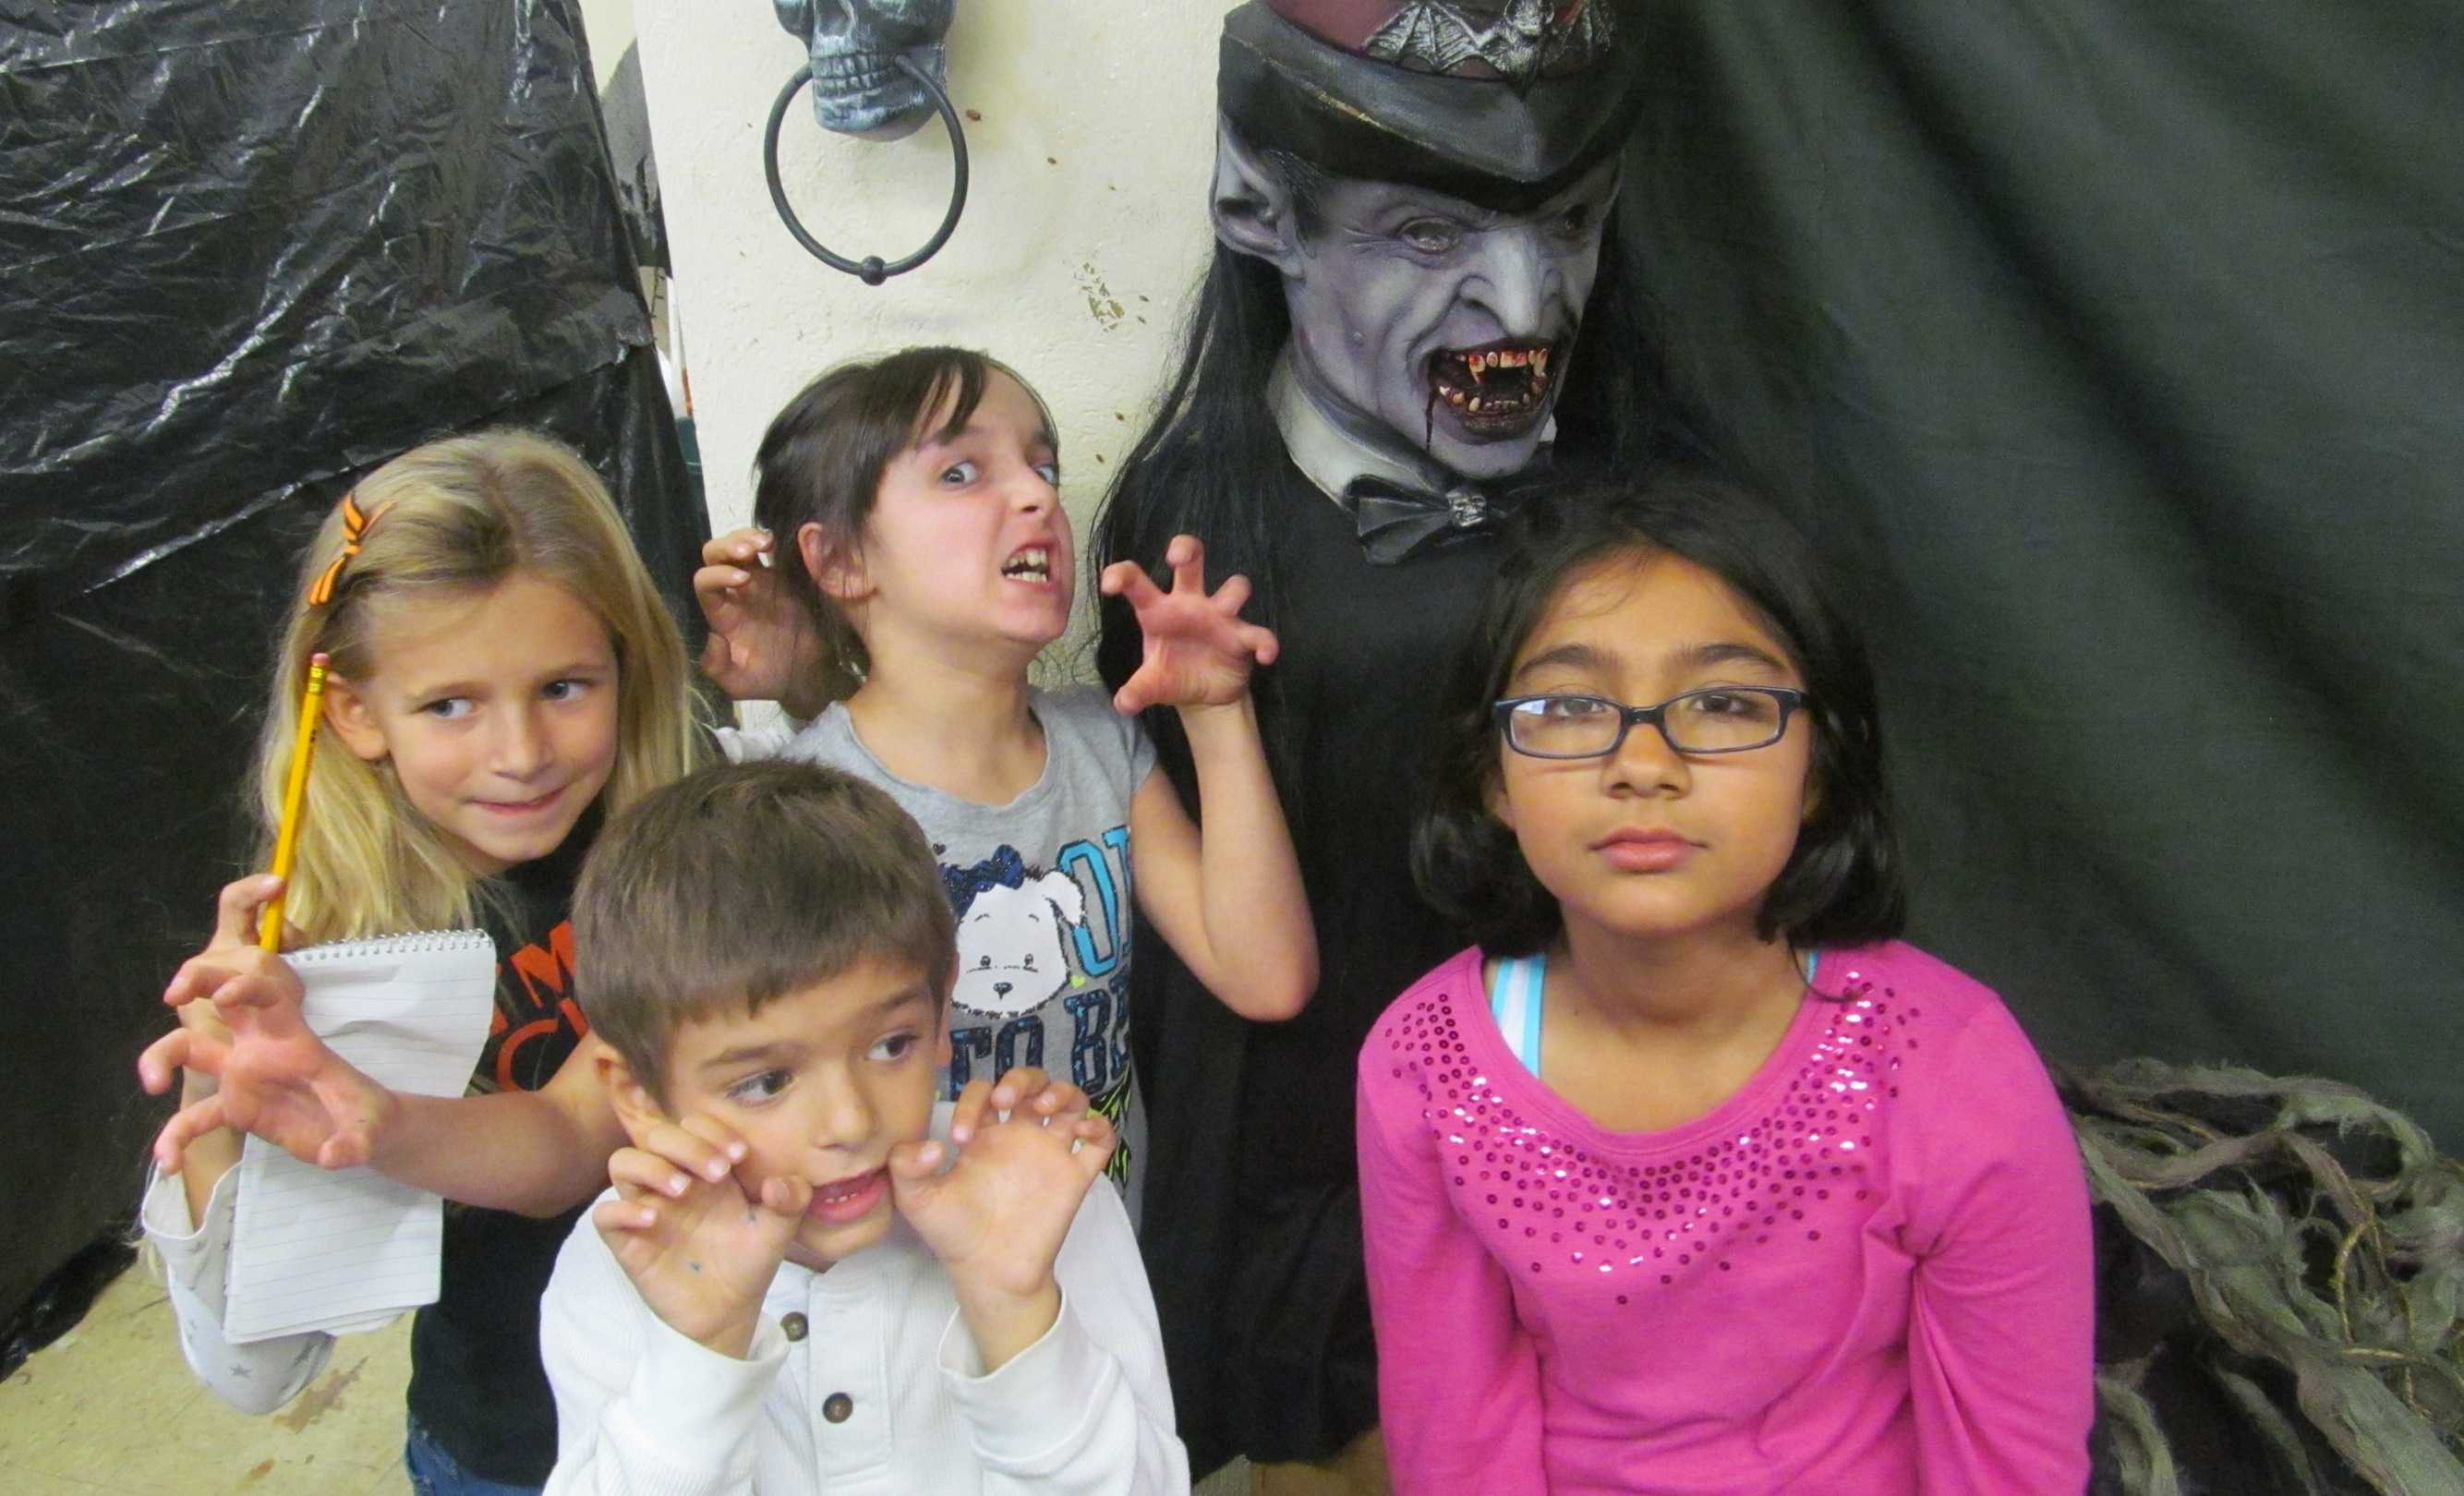 Cunniff Kids News reporters got a sneak peek of the haunted house being built in the Cunniff basement. The annual Cunniff Halloween party will be Friday, Oct. 24, from 6:30-8 p.m.